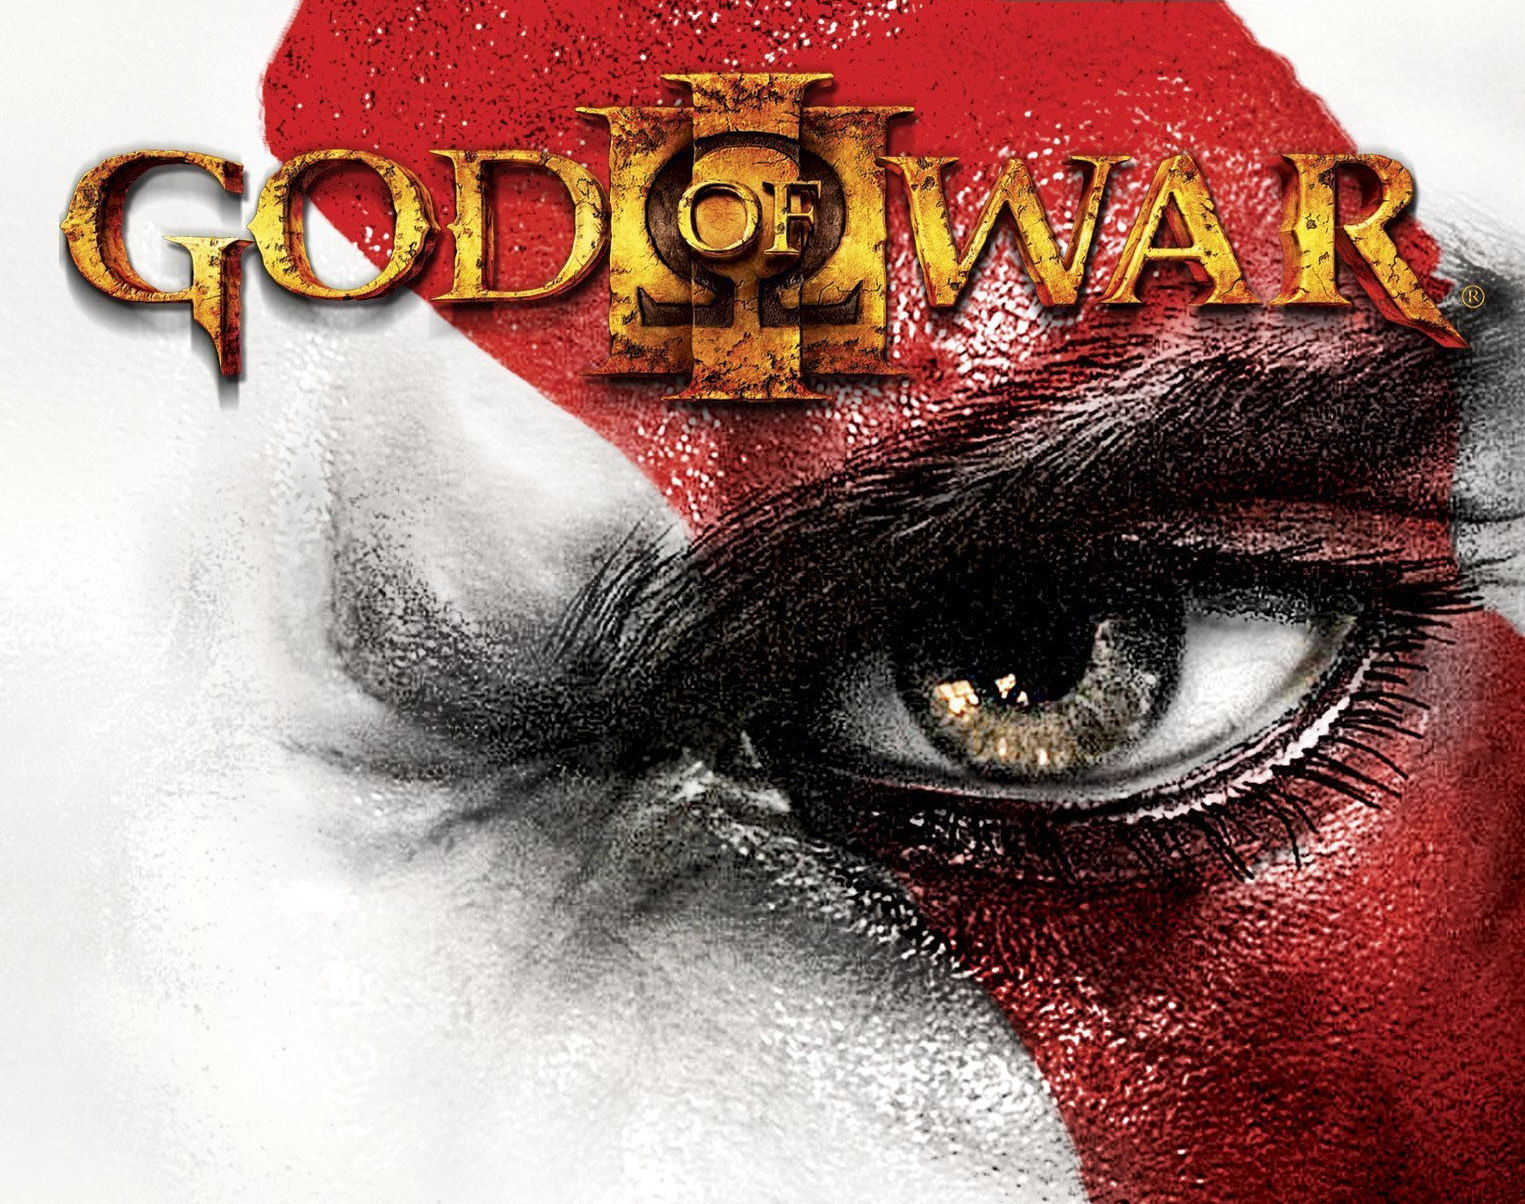 http://1.bp.blogspot.com/-Crlepk4xVm8/Ta_nLnq5NLI/AAAAAAAAACs/1TbLgPn4_1A/s1600/god-of-war-3-walkthrough-logo-big-kratos-eye.jpg